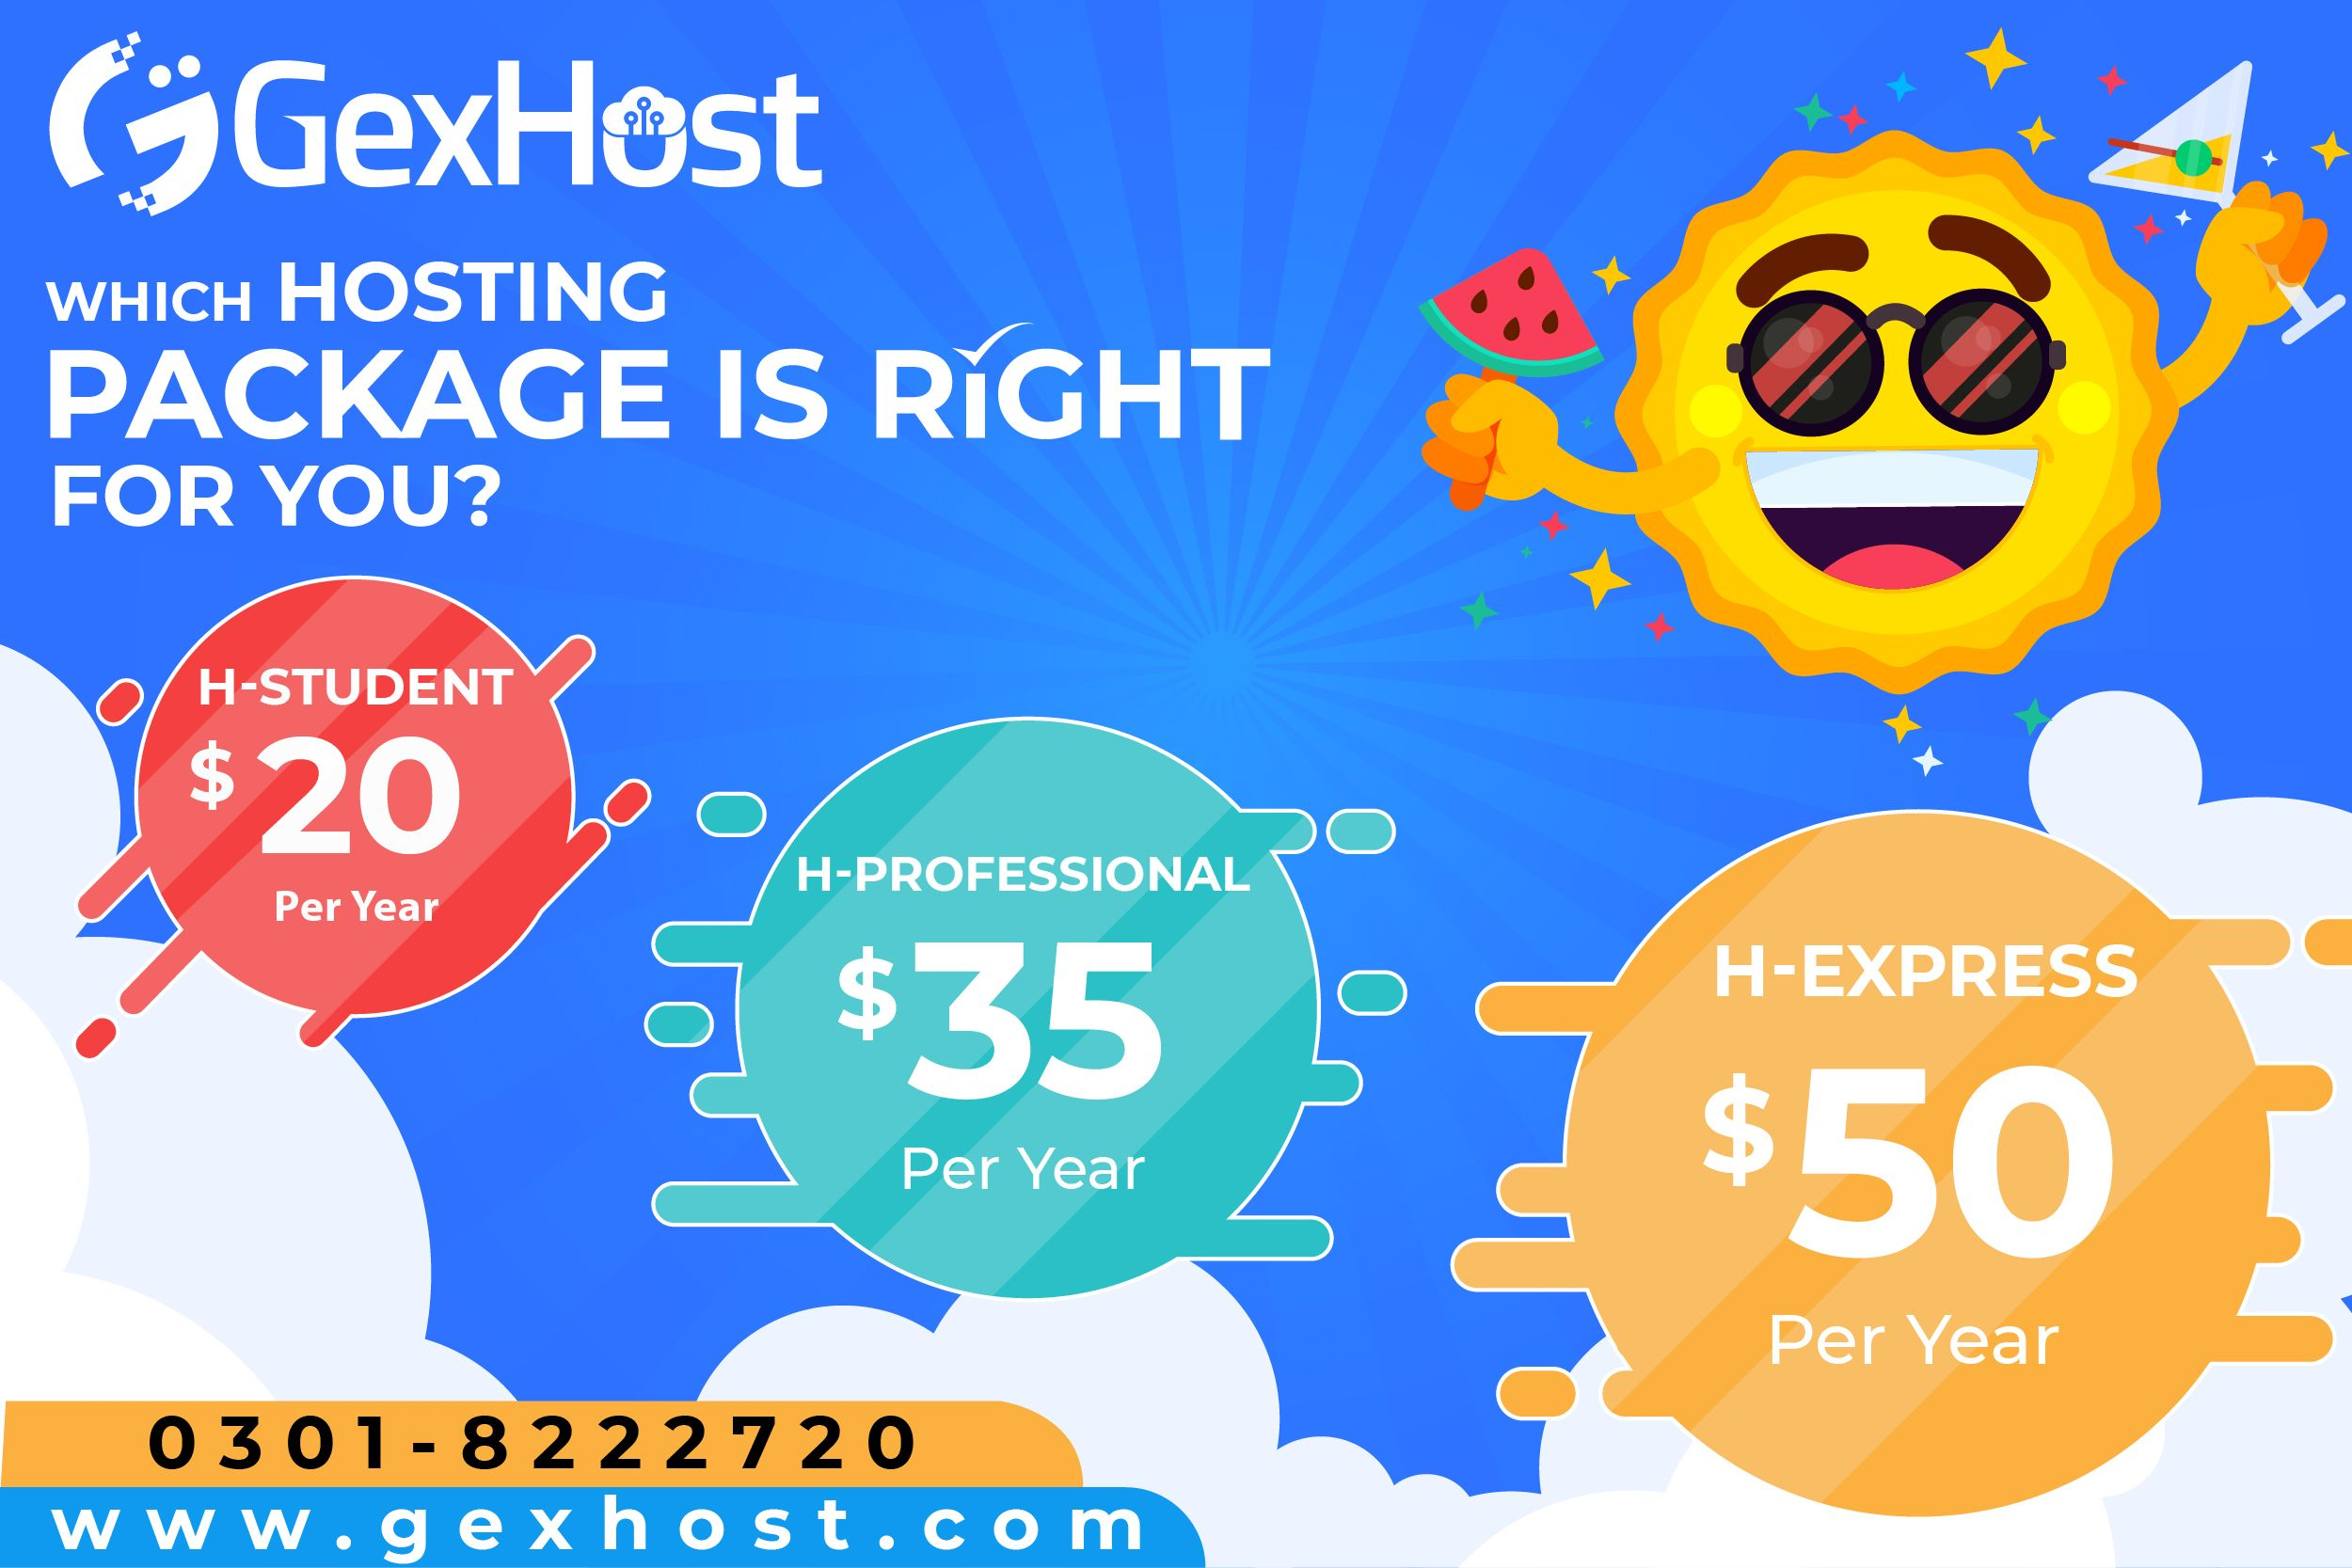 Choose the Right Hosting Package for Your Business!